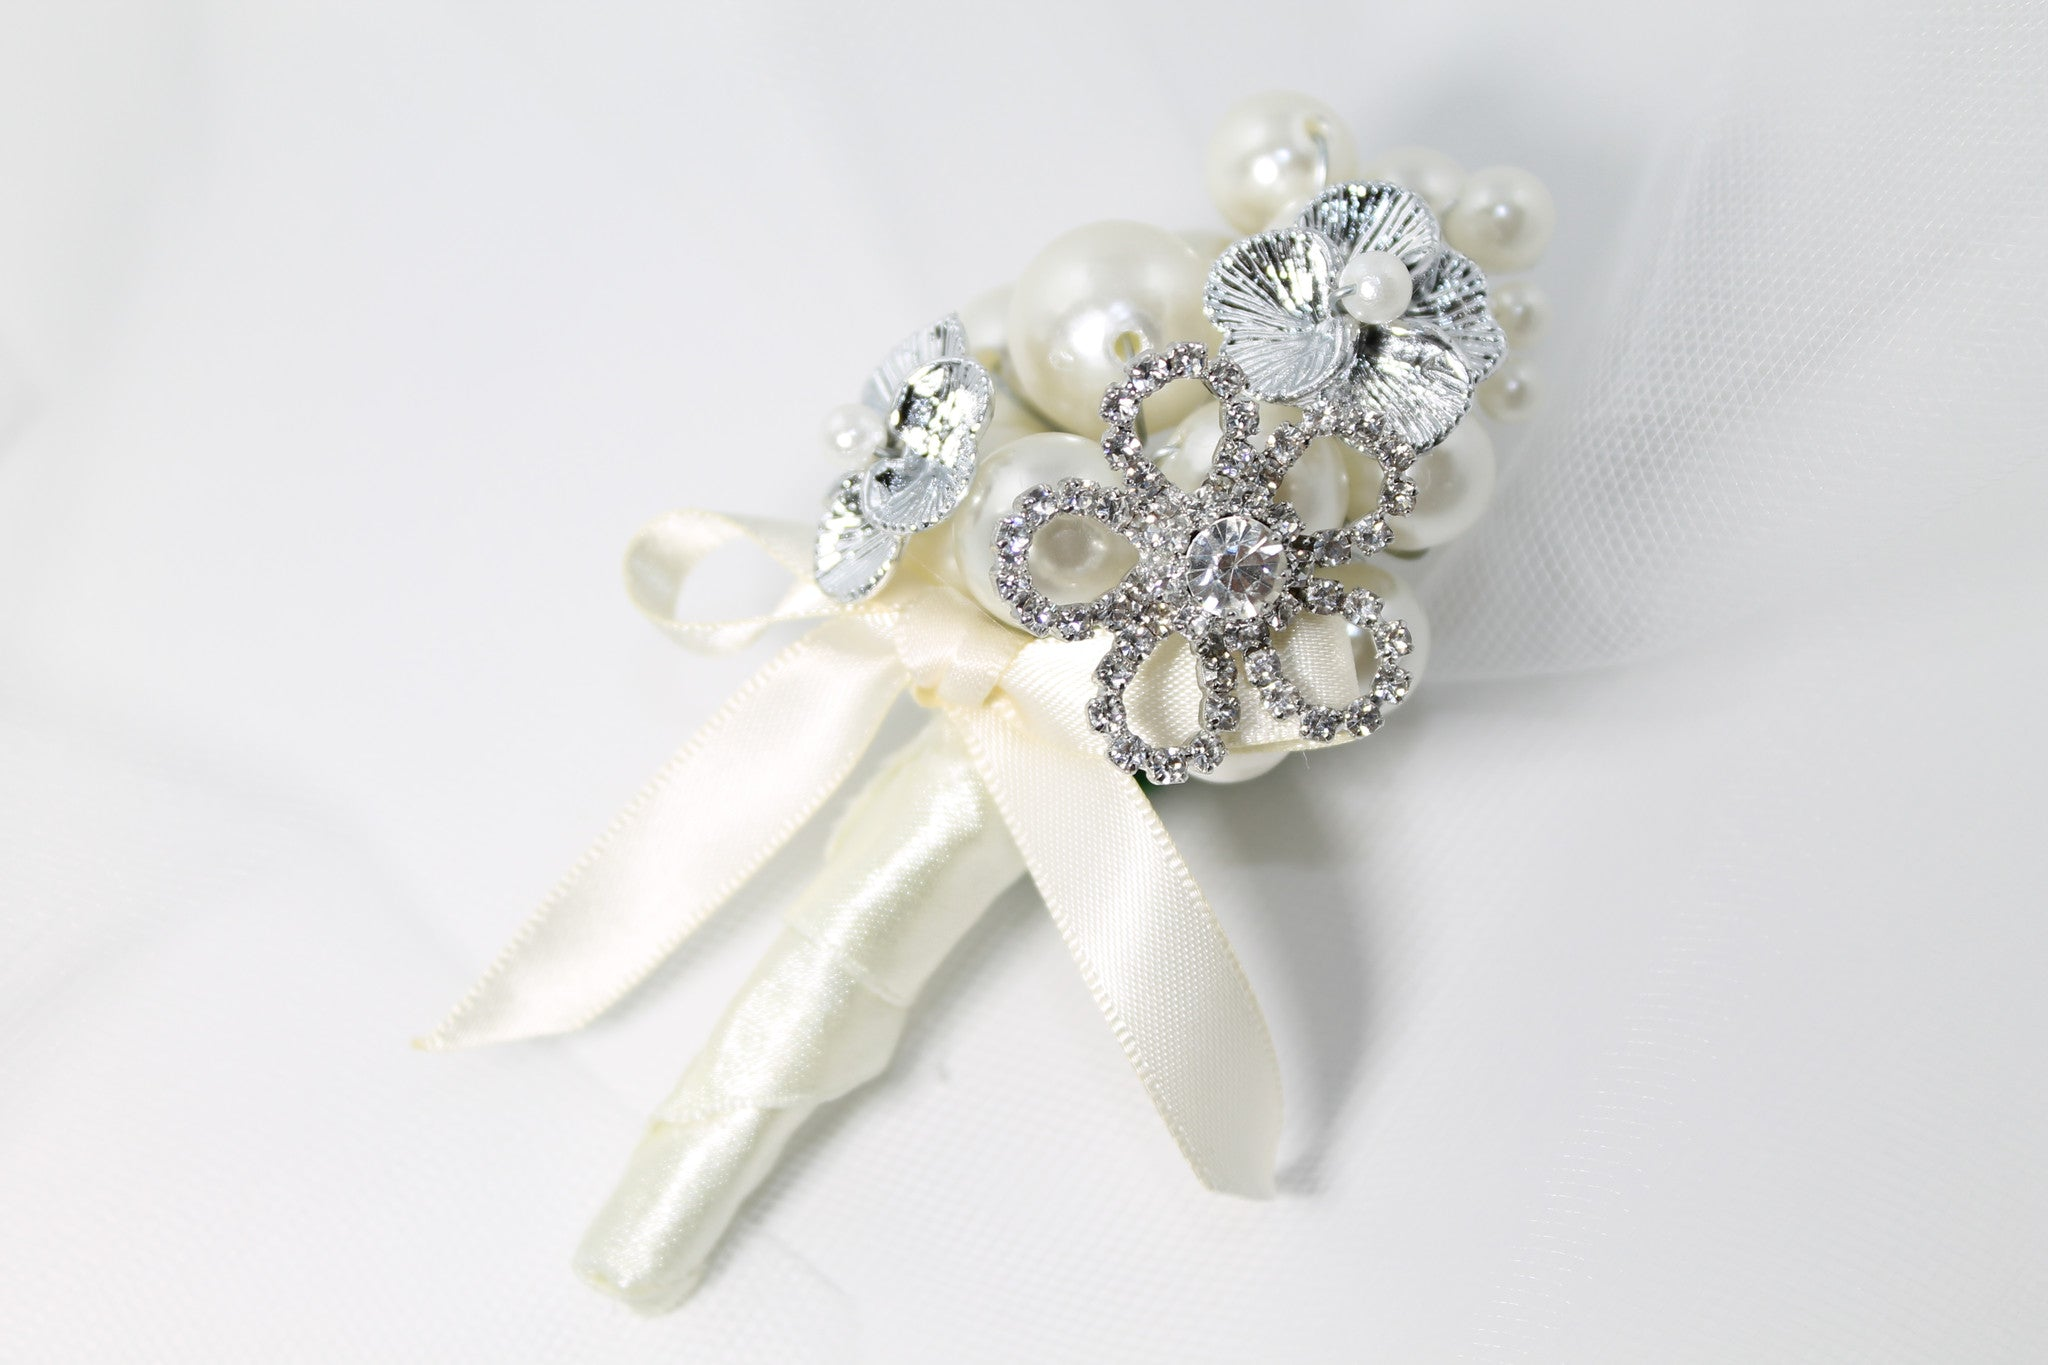 Bridal Boutonniere Handmade Silver with Faux Pearls - Bride Glamor